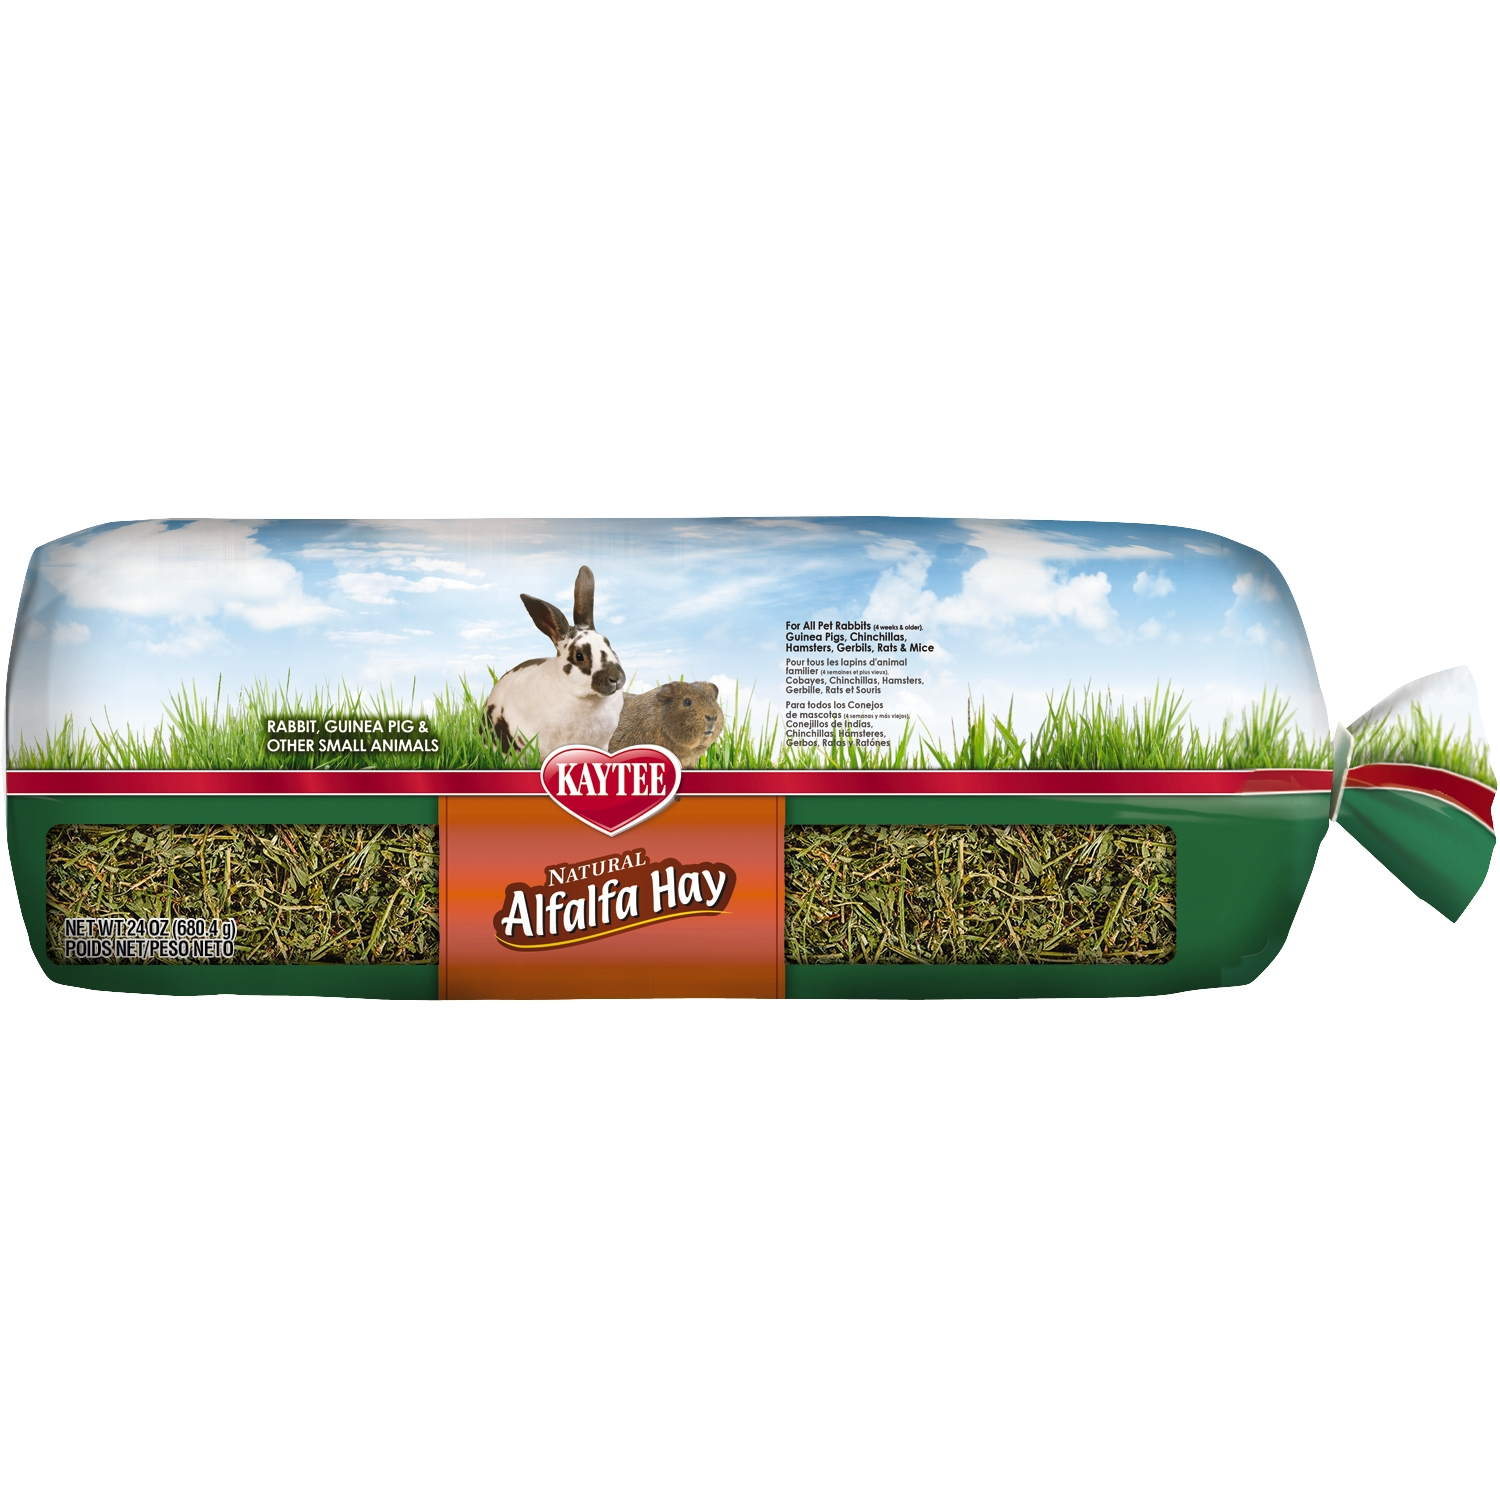 All Natural Alfalfa Hay Mini Bale 24 oz